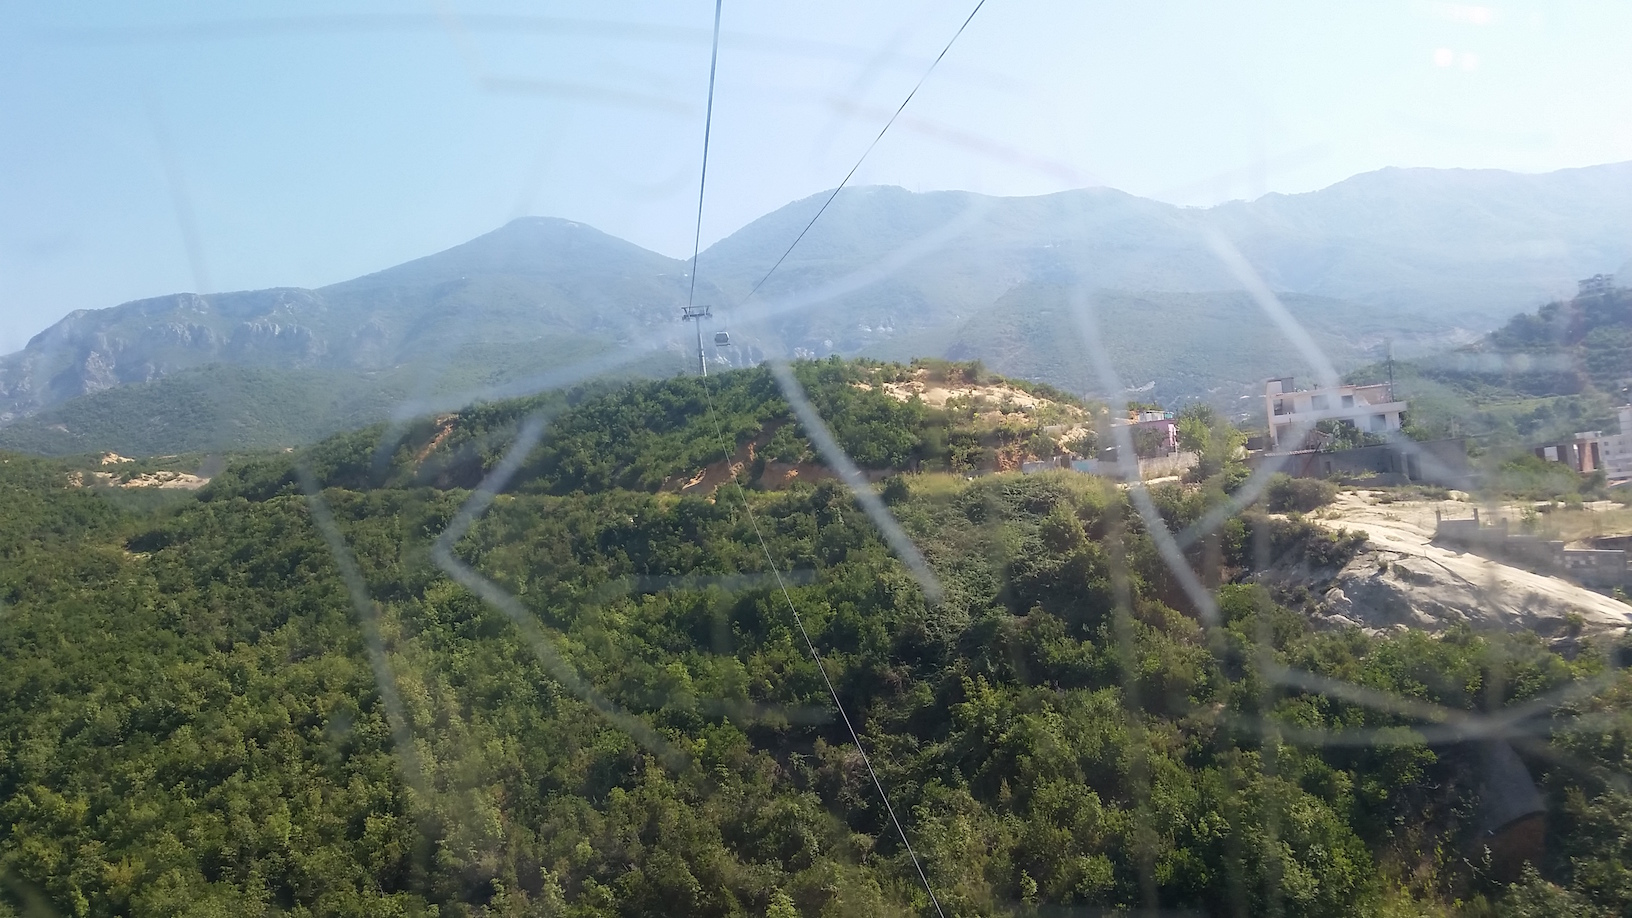 View from the cable car, scratched glass and all